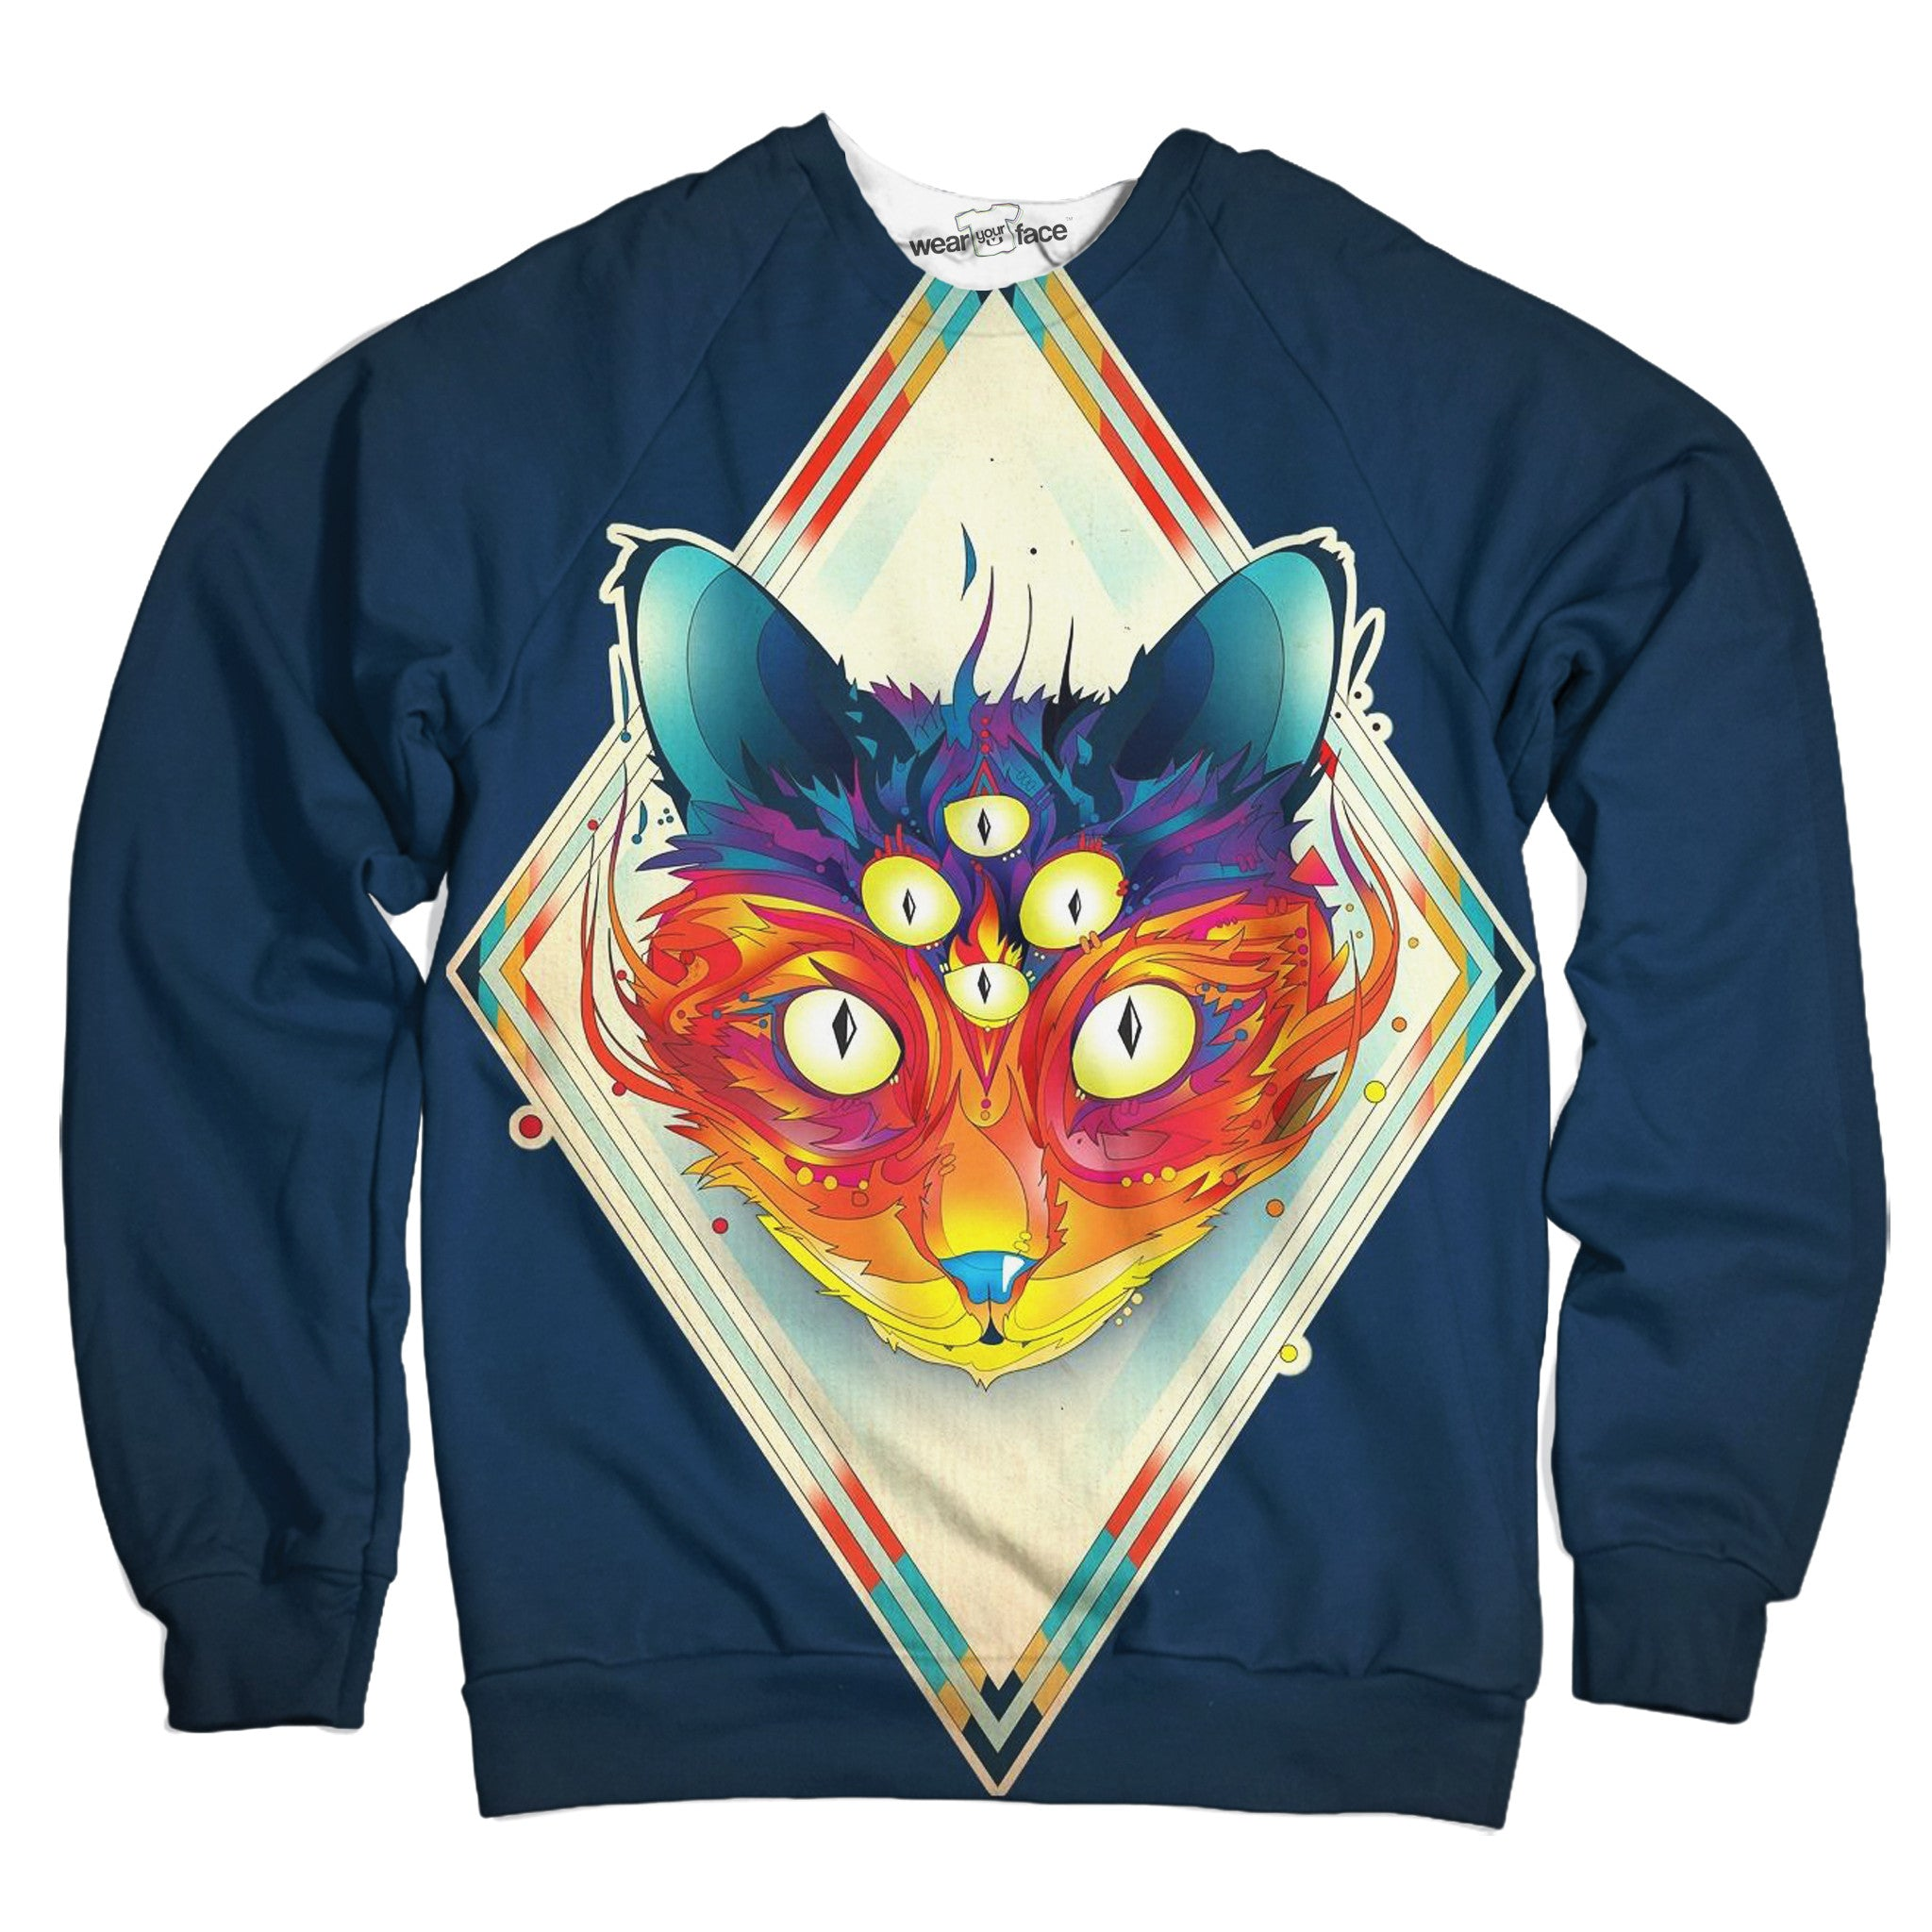 Wondrous Cat Sweatshirt